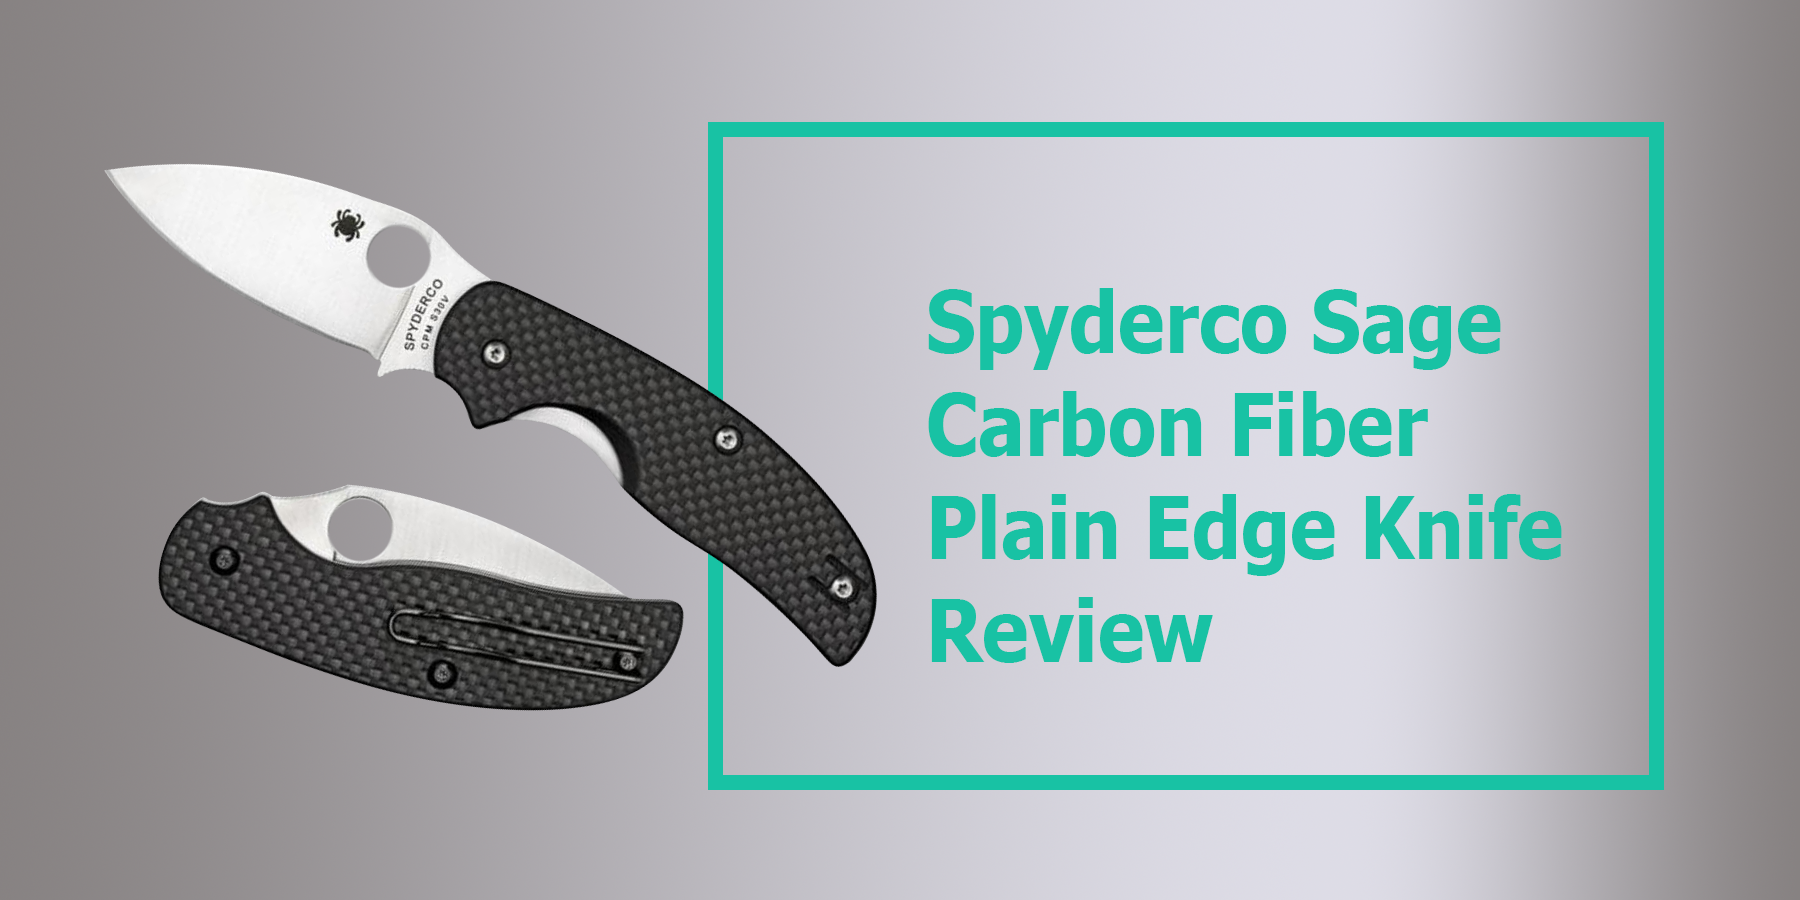 Spyderco Sage Carbon Fiber Plain Edge Knife Review